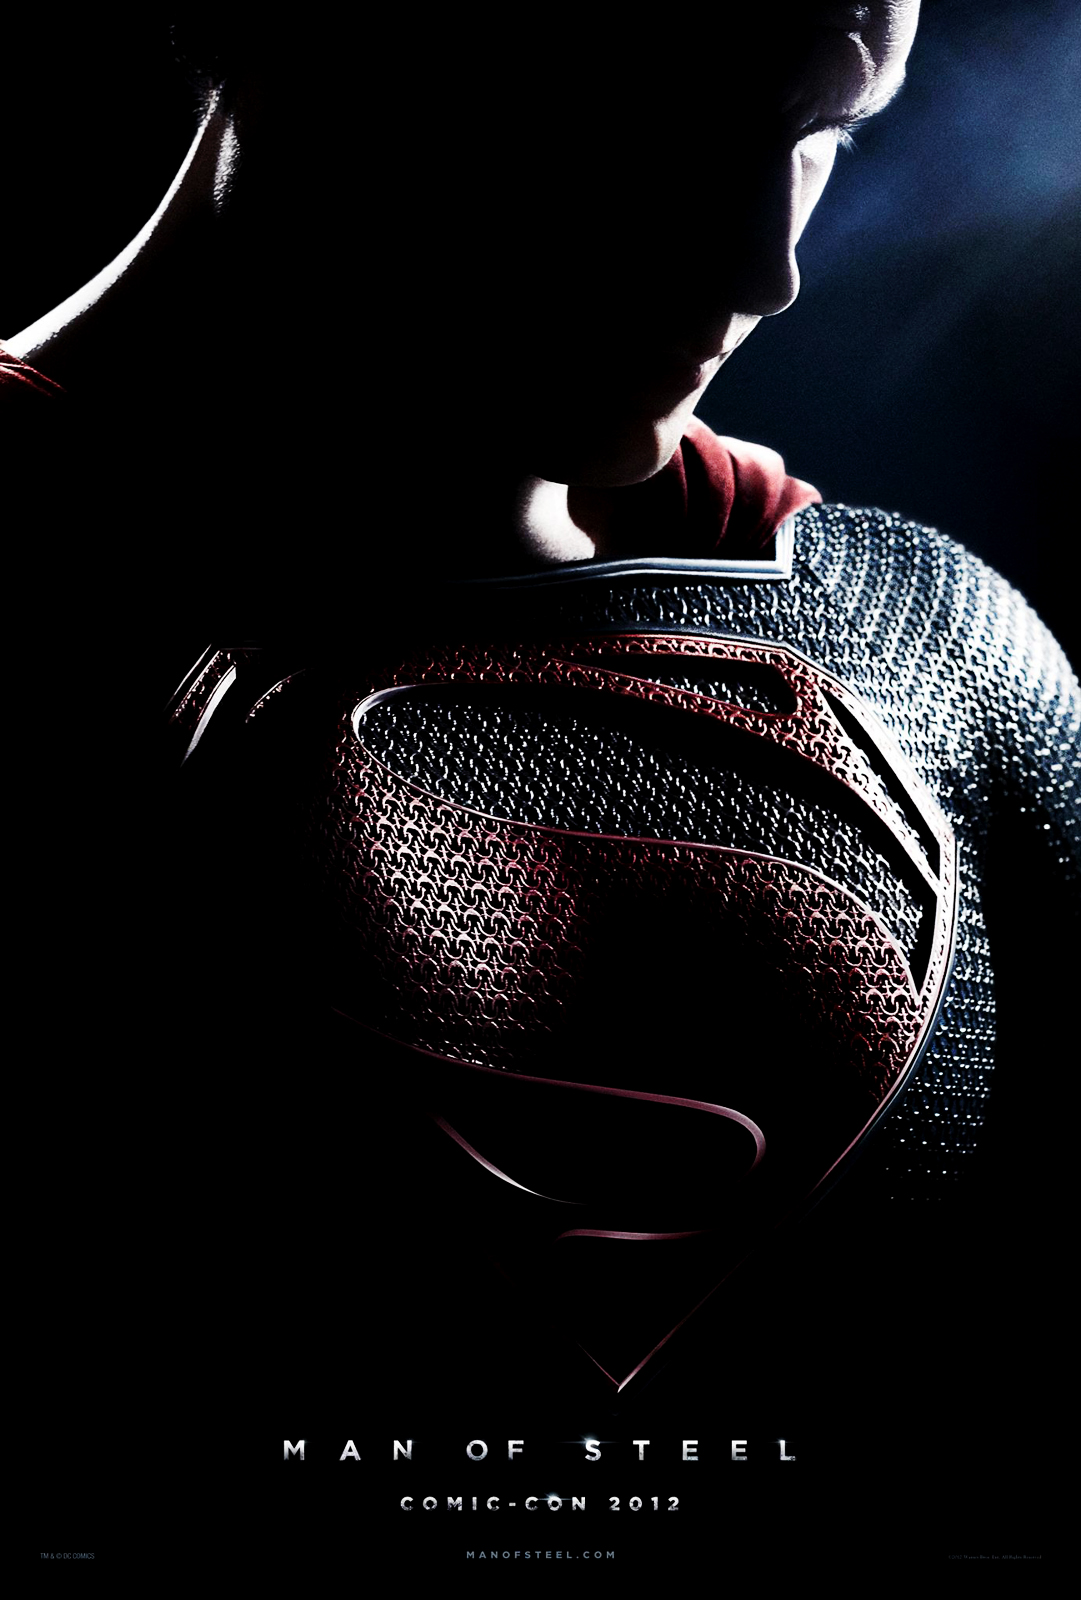 http://3.bp.blogspot.com/-ggVeW9T9hPs/UAQ2sRlrCnI/AAAAAAAAC20/9HtGSjBI8eM/s1600/Man_of_Steel_Superman_Movie_New_Poster_HD_Wallpaper-Vvallpaper.Net.jpeg